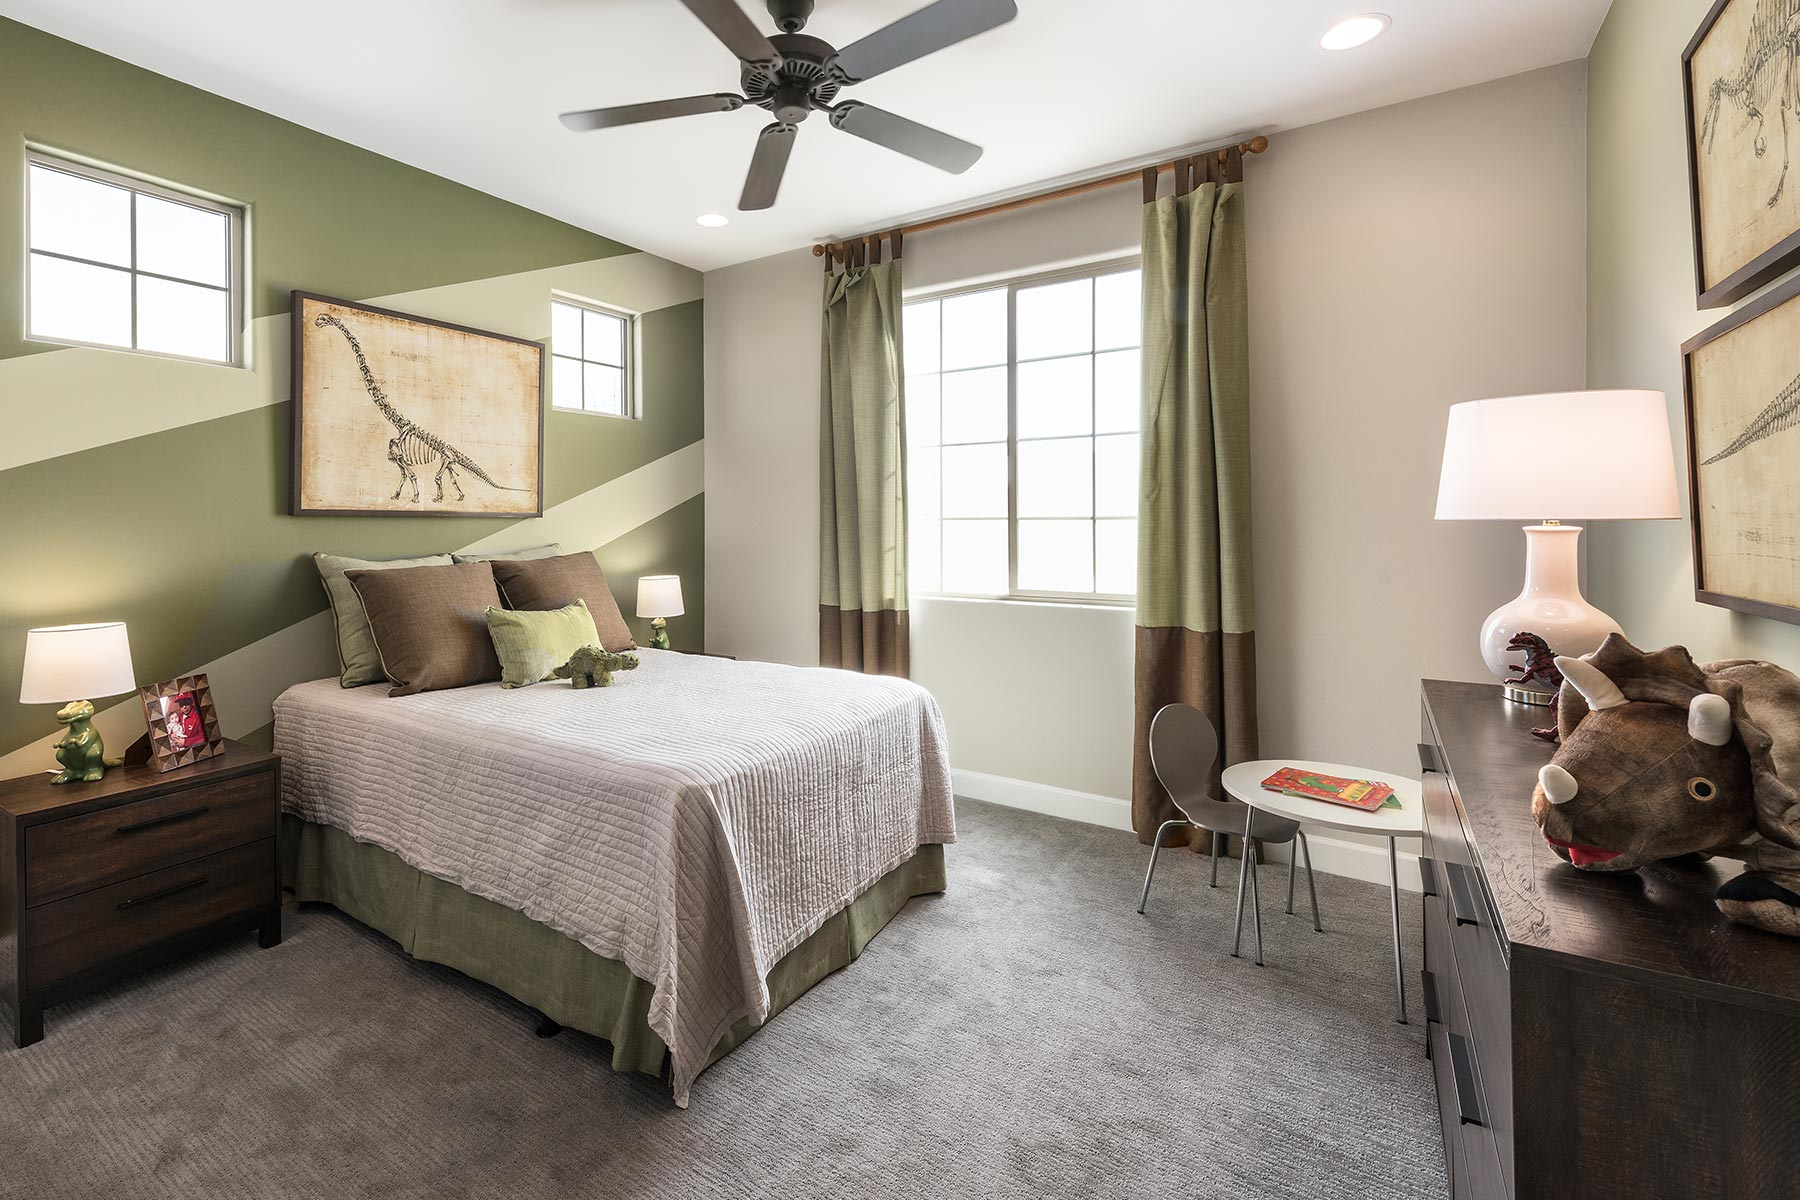 Ocotillo Plan Bedroom at Saguaro Trails in Tucson Arizona by Mattamy Homes